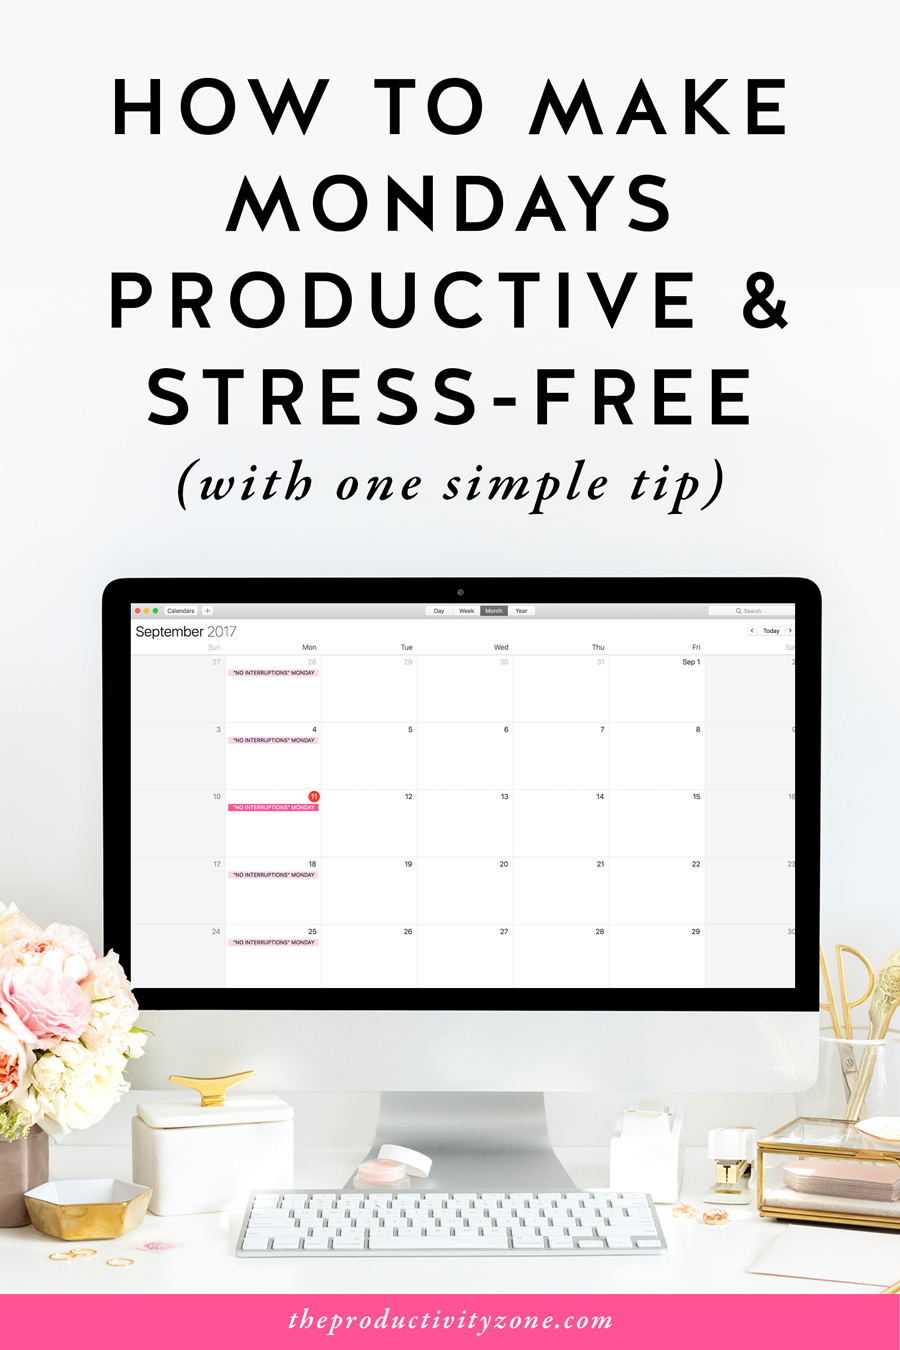 How to make Mondays productive and stress-free with one simple tip that will completely change the way you schedule your week and shoot your productivity through the roof on The Productivity Zone!!